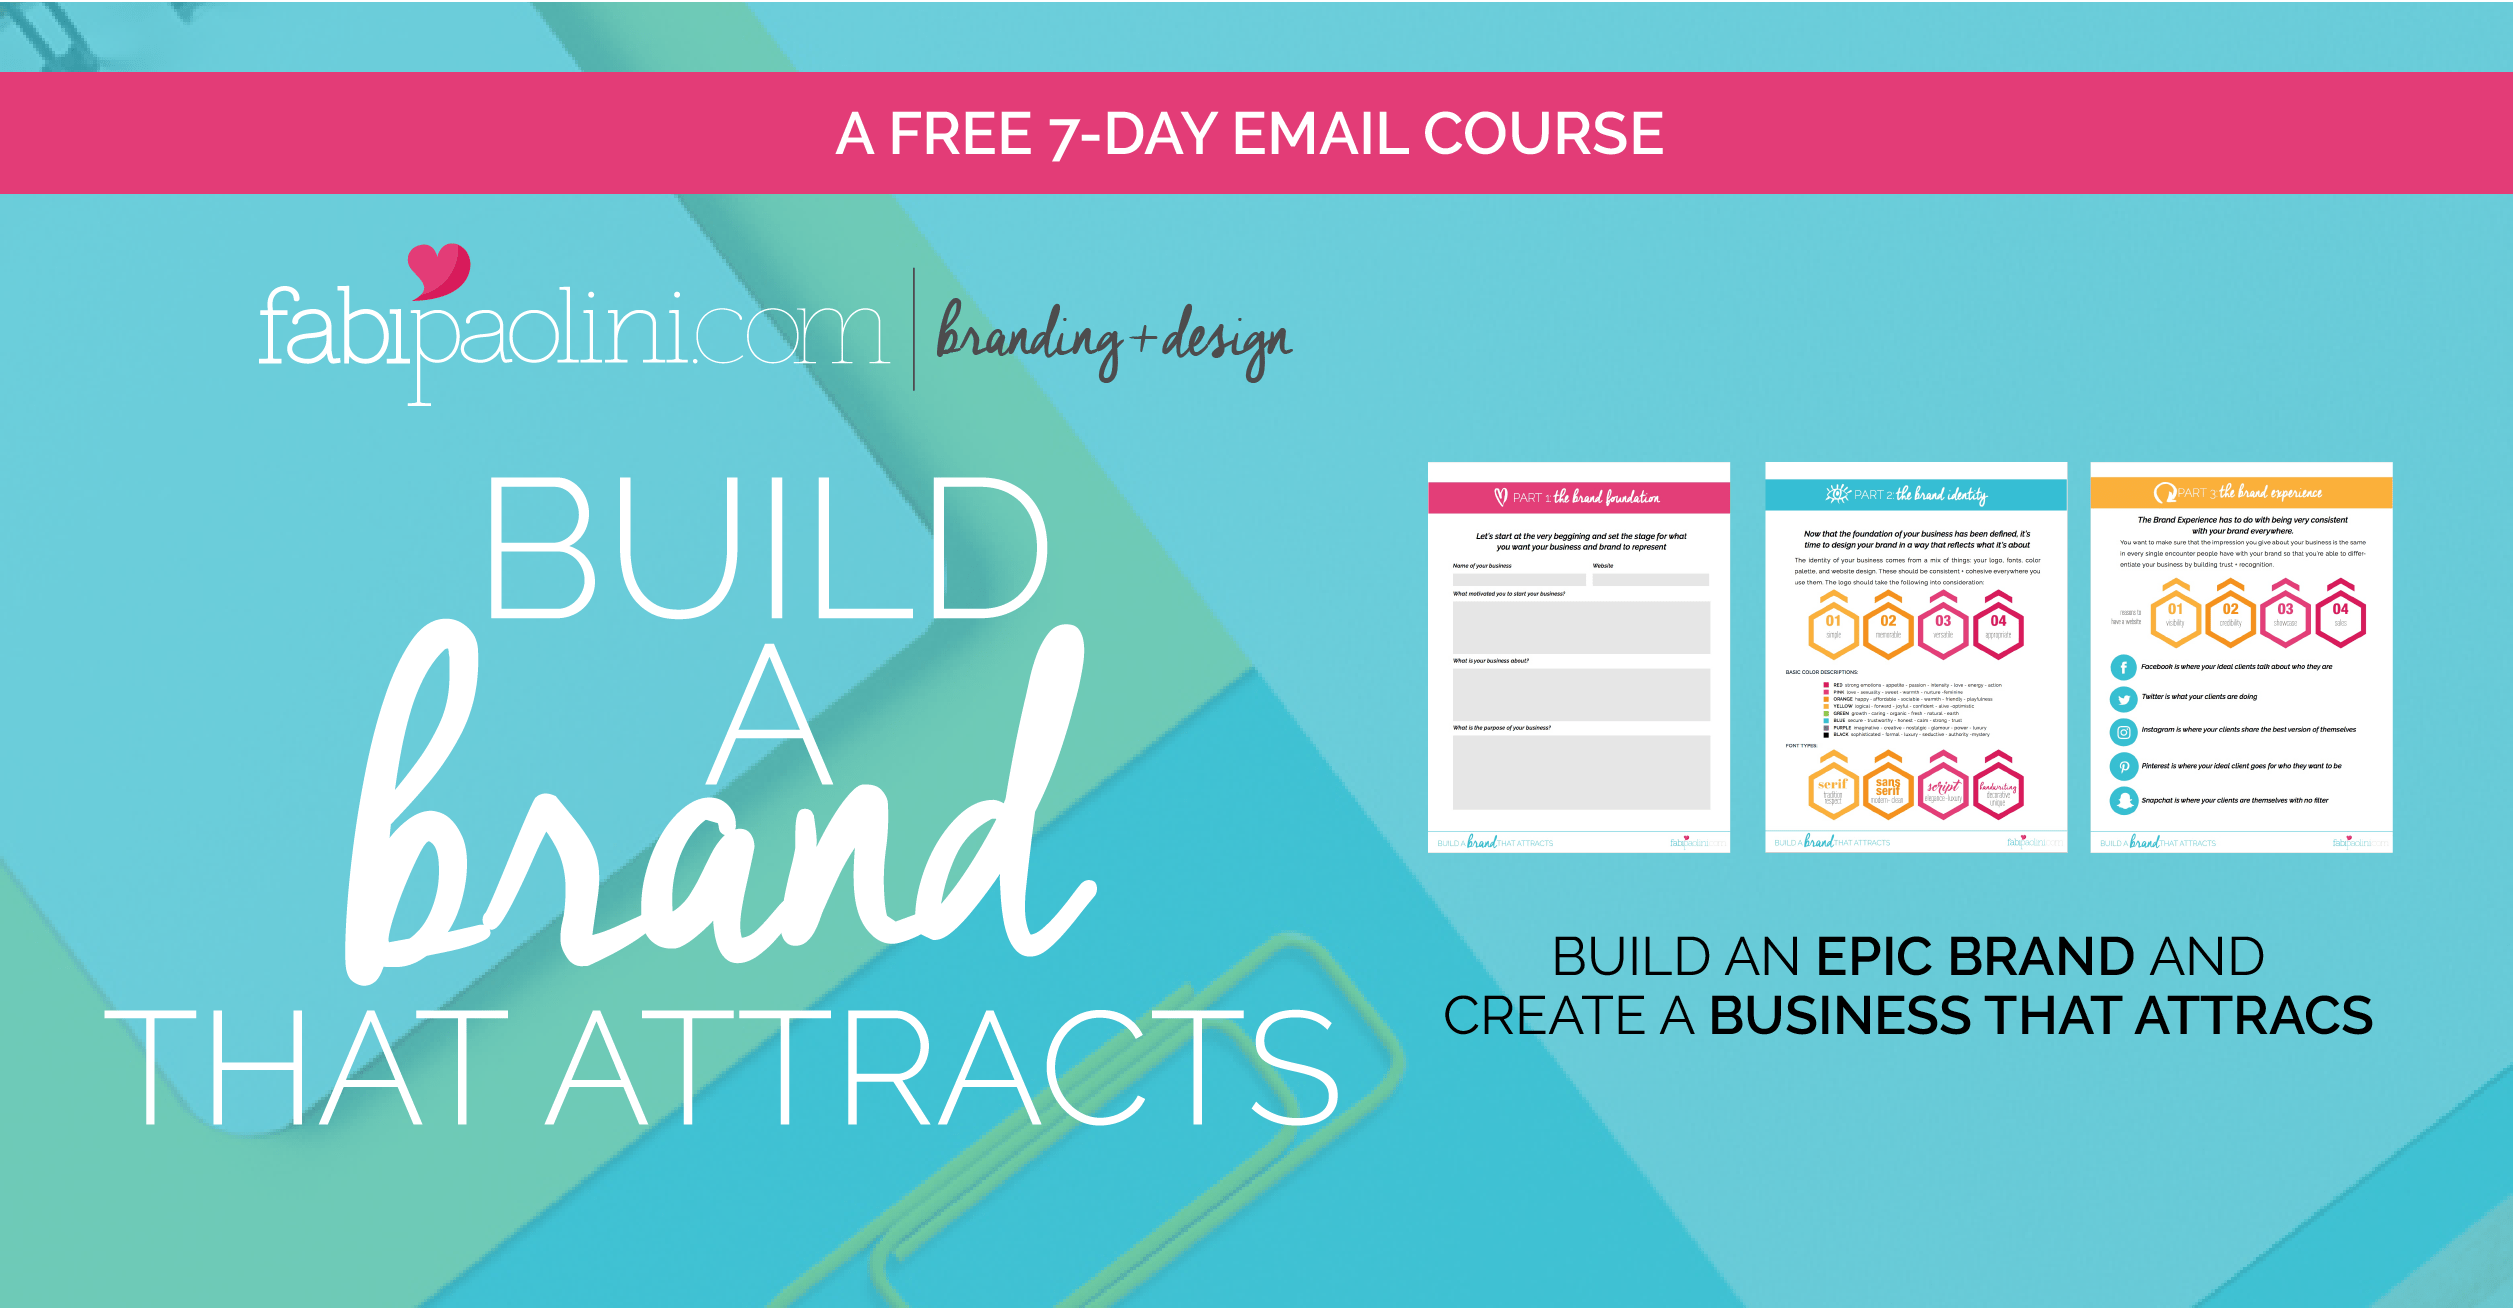 Build a Brand that Attracts - A free email branding course | Fabi Paolini Branding + Design + entrepreneur